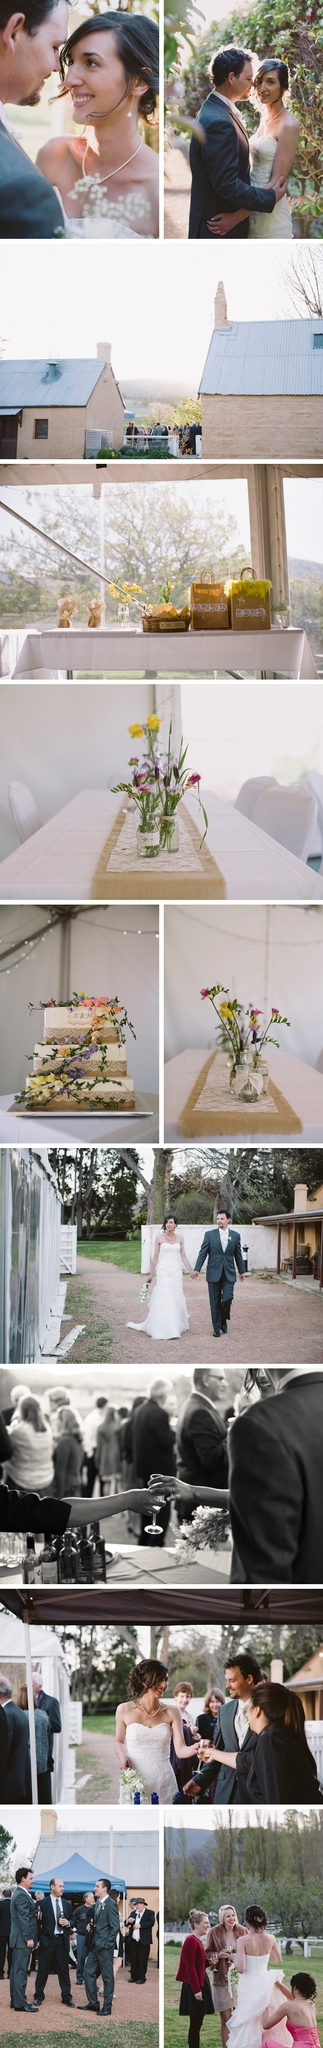 Lanyon Homestead Wedding